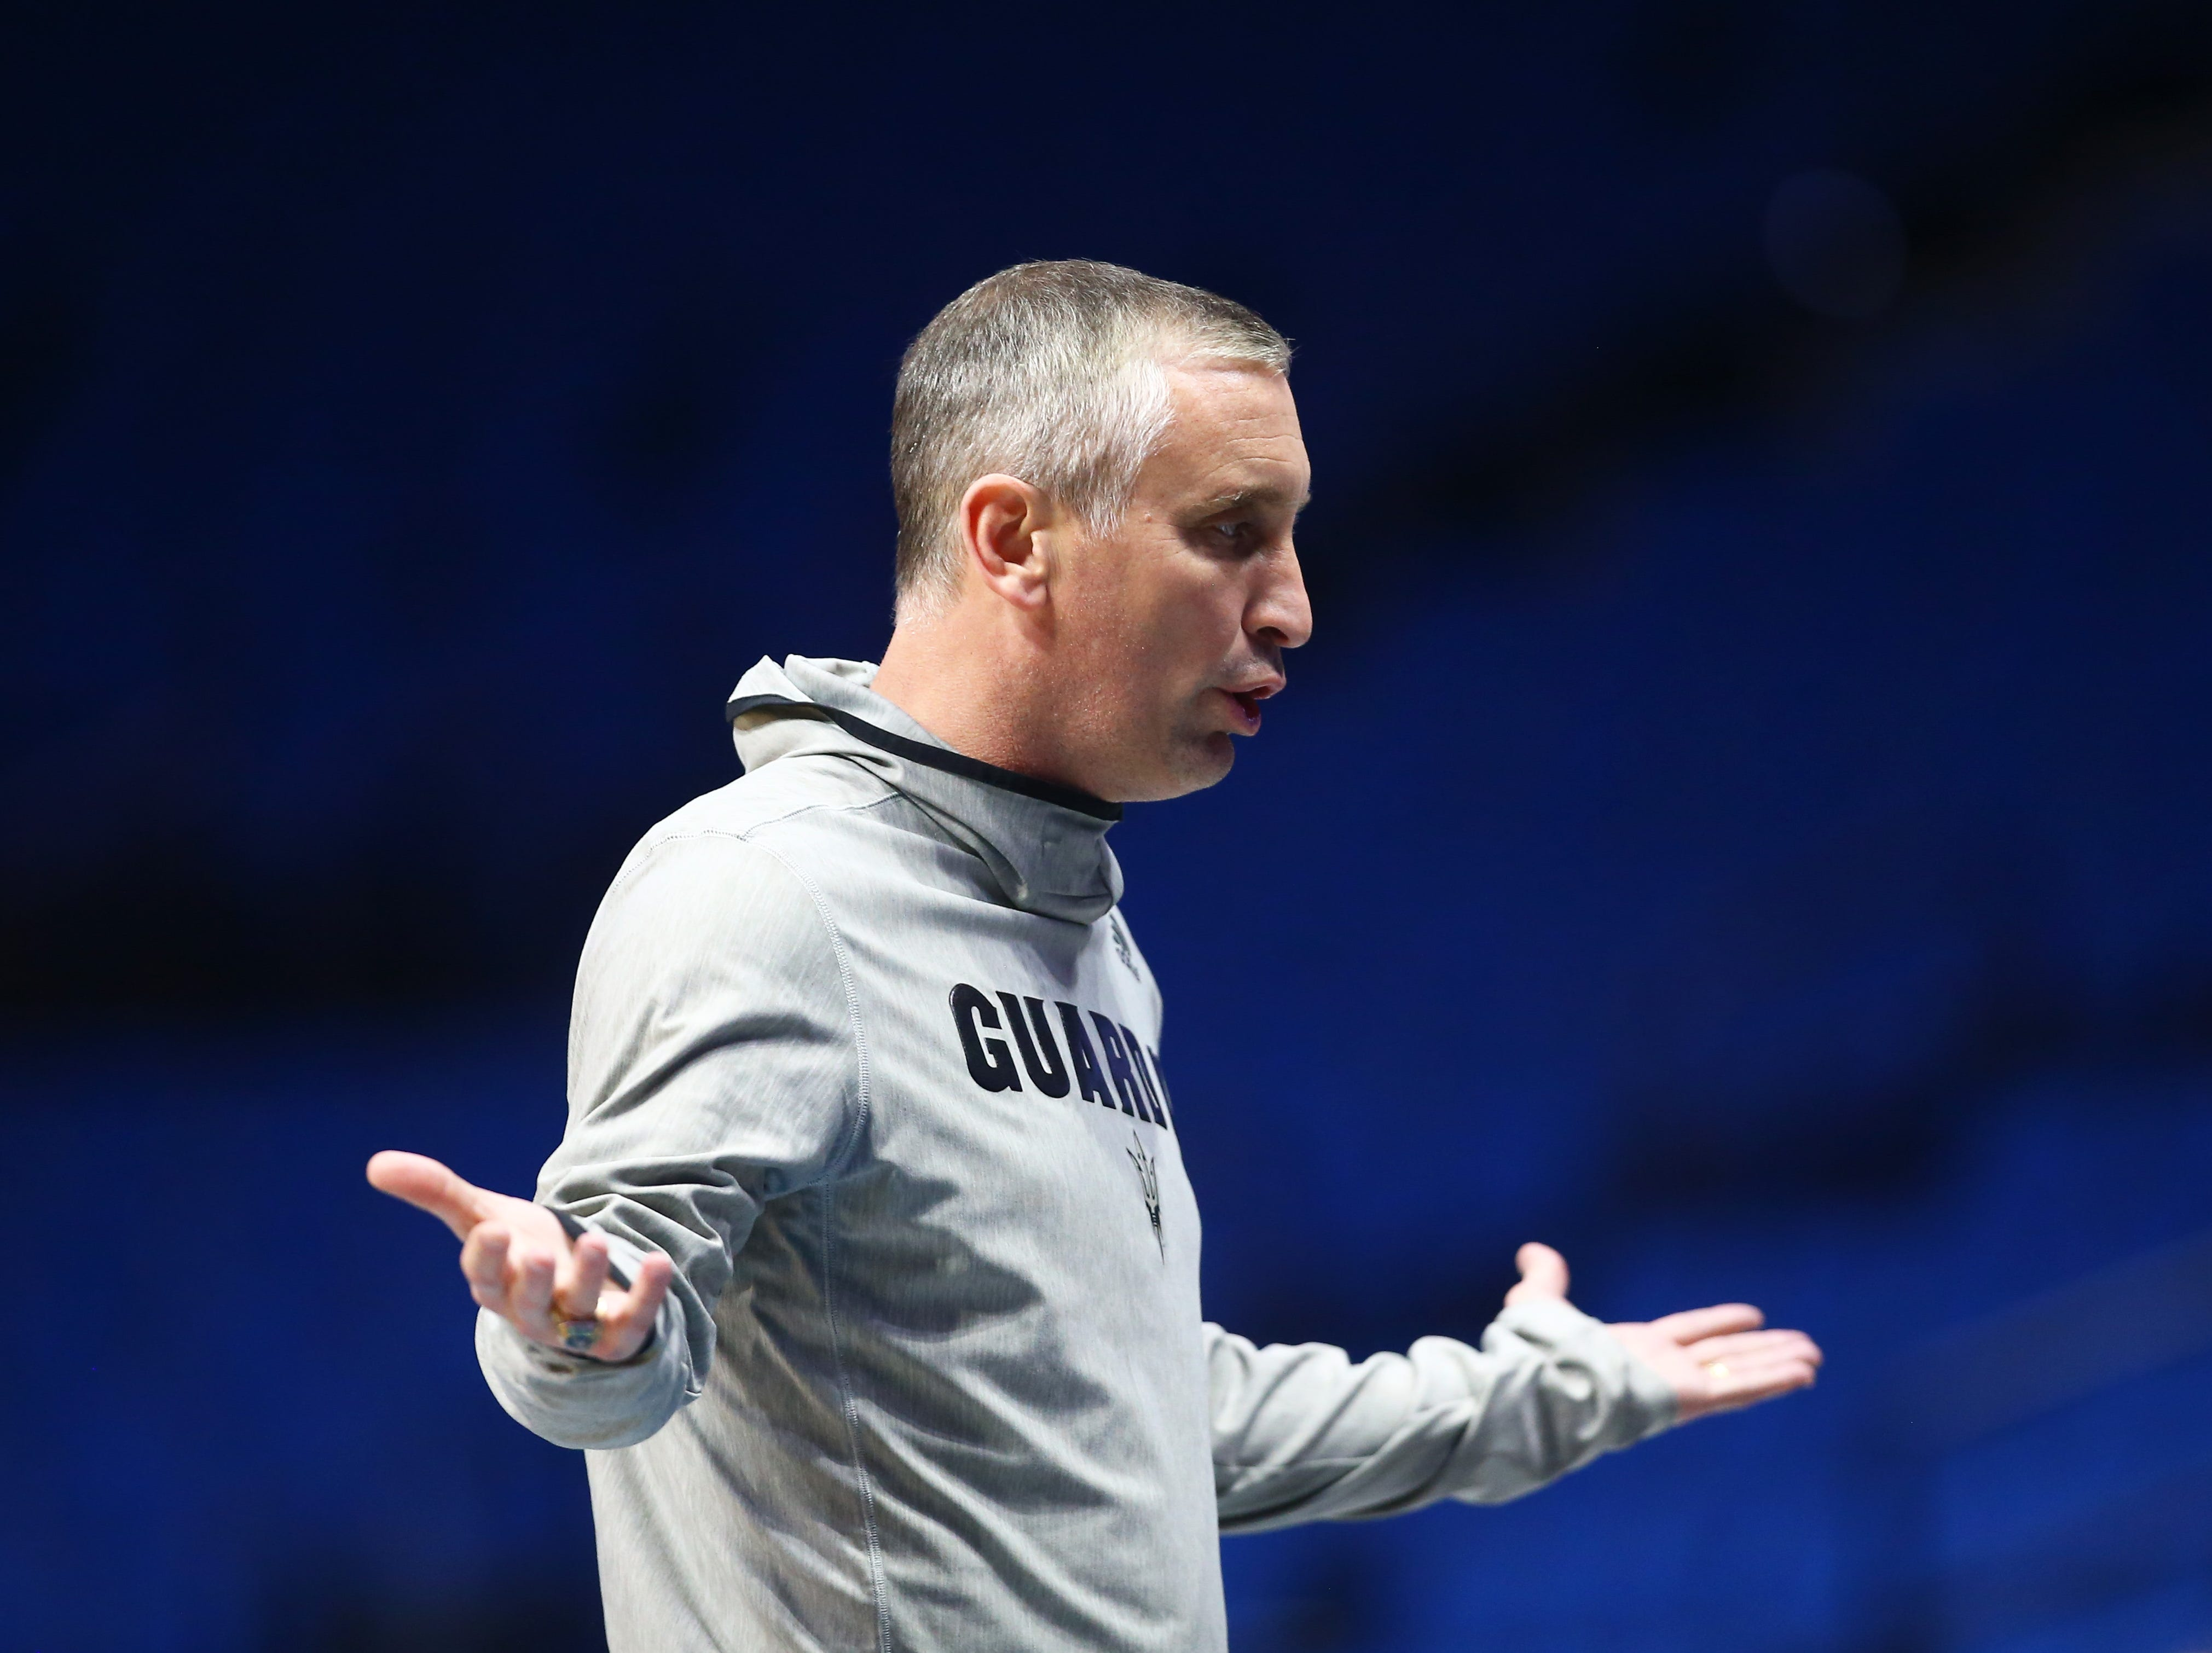 Mar 21, 2019; Tulsa, OK, USA; Arizona State Sun Devils head coach Bobby Hurley reacts during practice before the first round of the 2019 NCAA Tournament at BOK Center. Mandatory Credit: Mark J. Rebilas-USA TODAY Sports